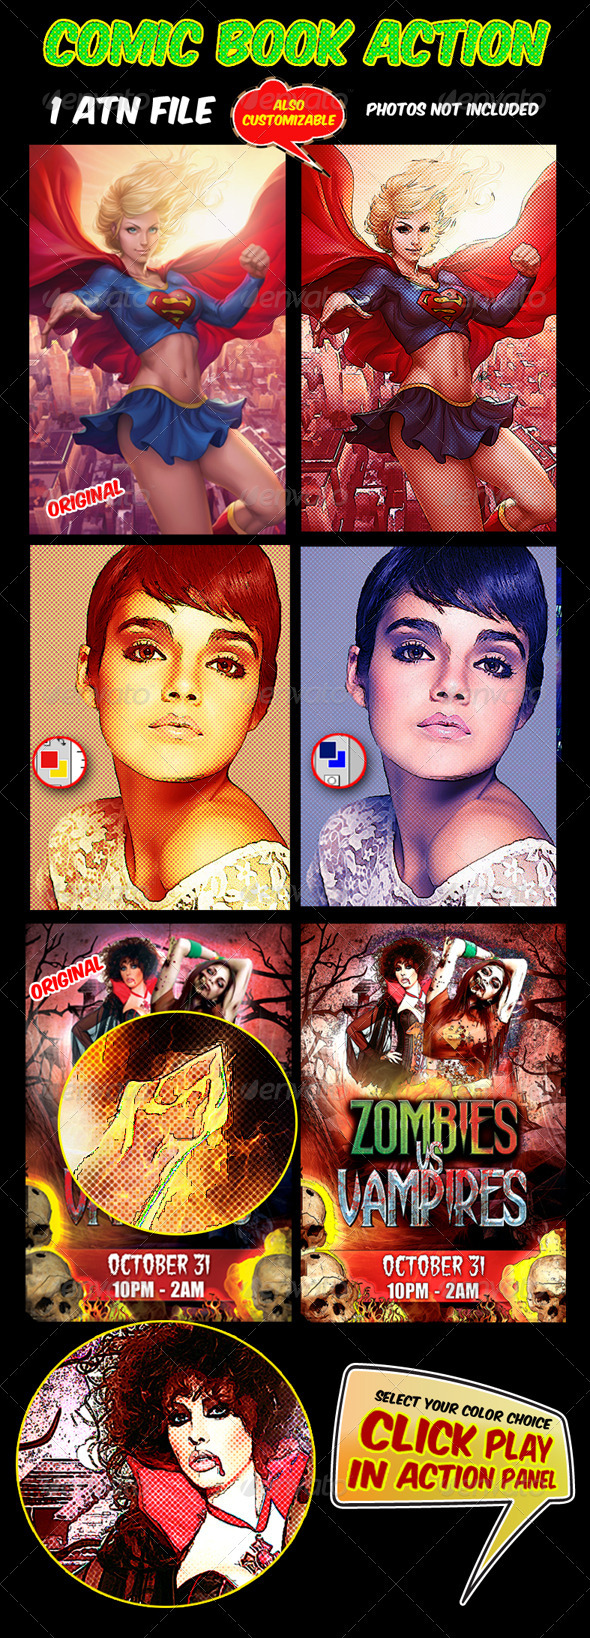 GraphicRiver Comic Book Action 644494